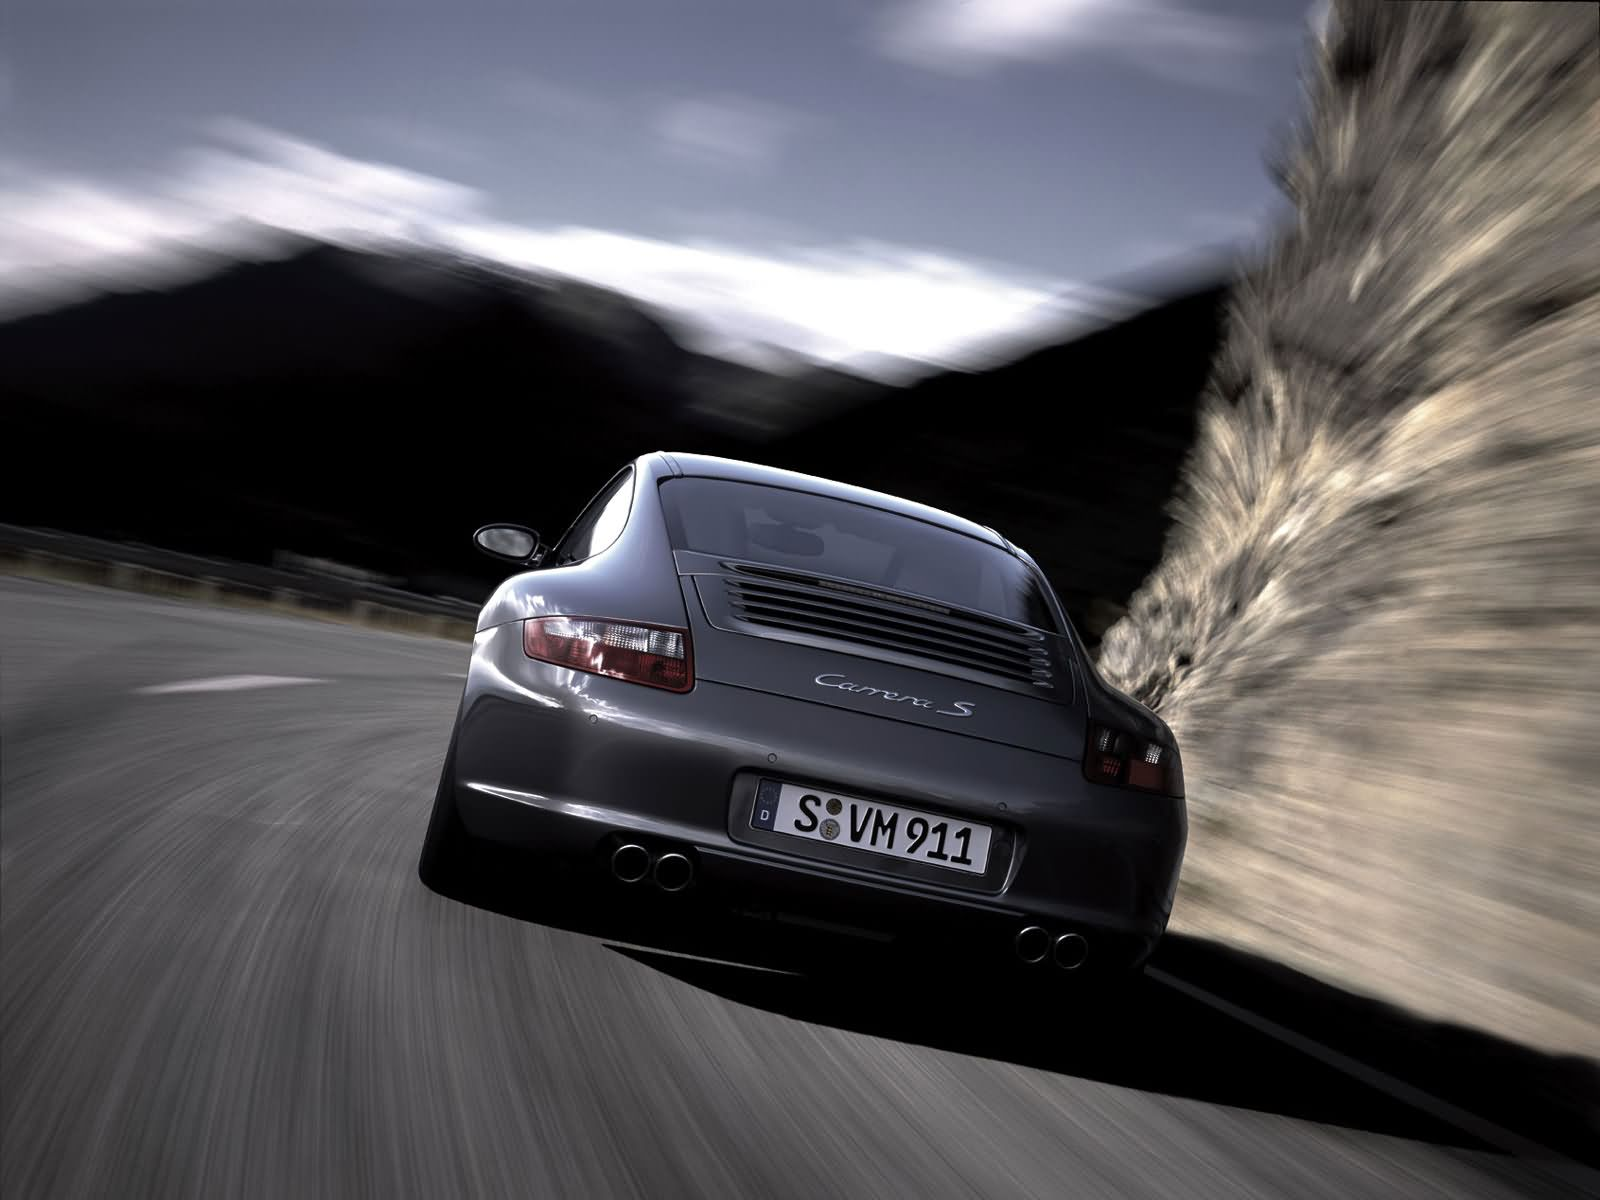 Porsche 997 911 Carrera S photo 18206